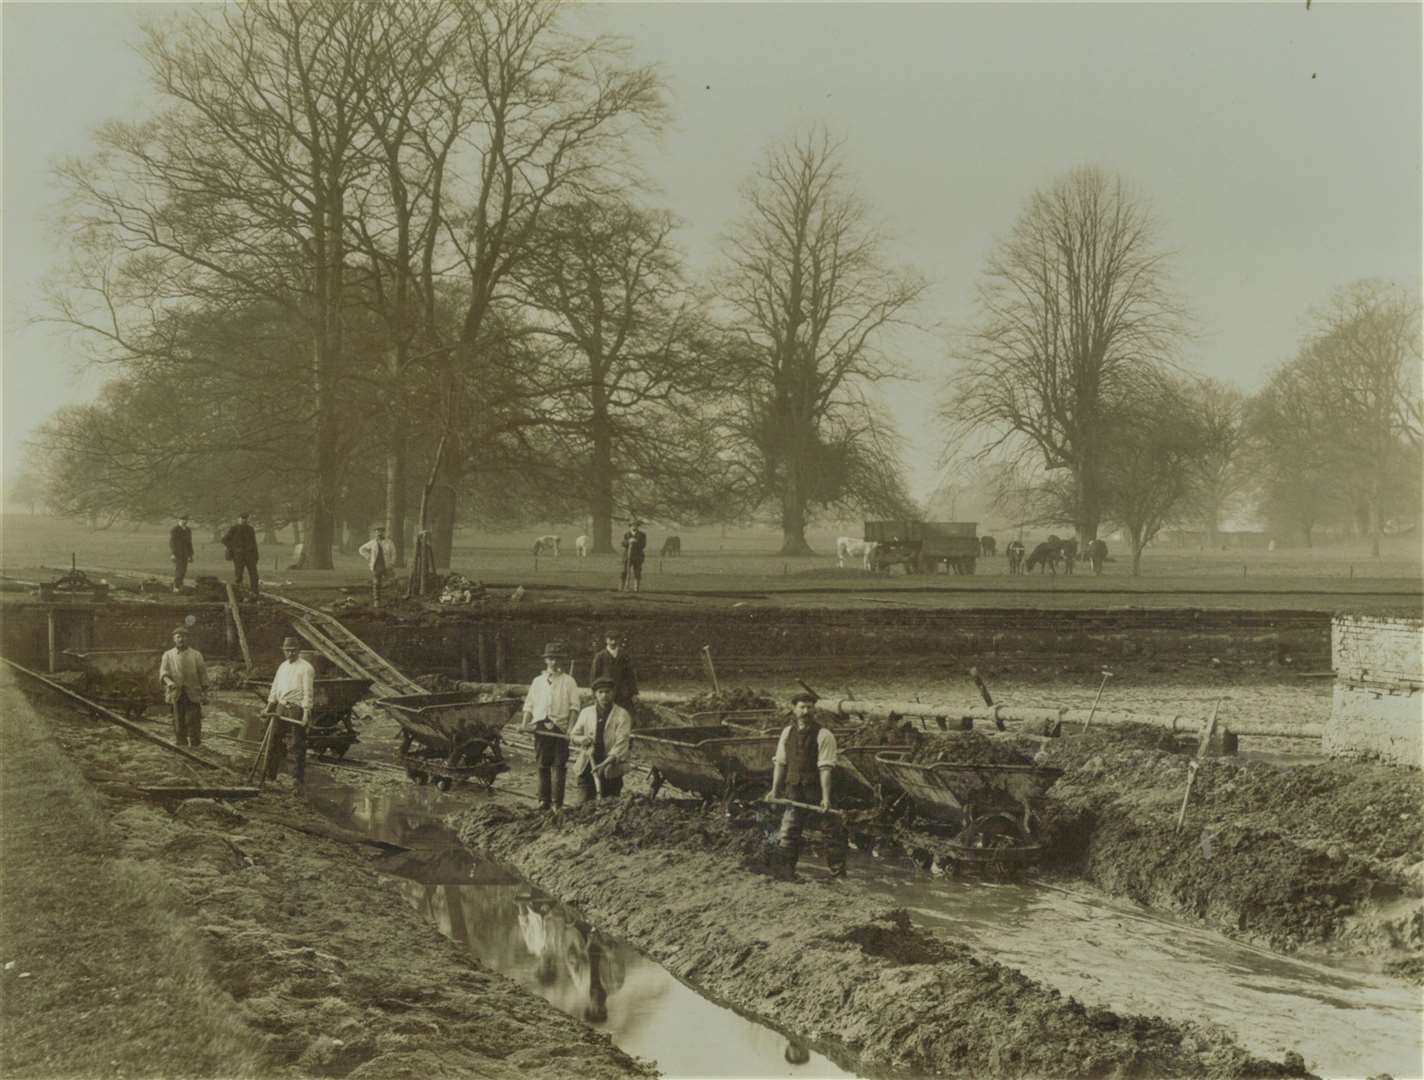 Moat work east between 1900 and 1910. (46914671)